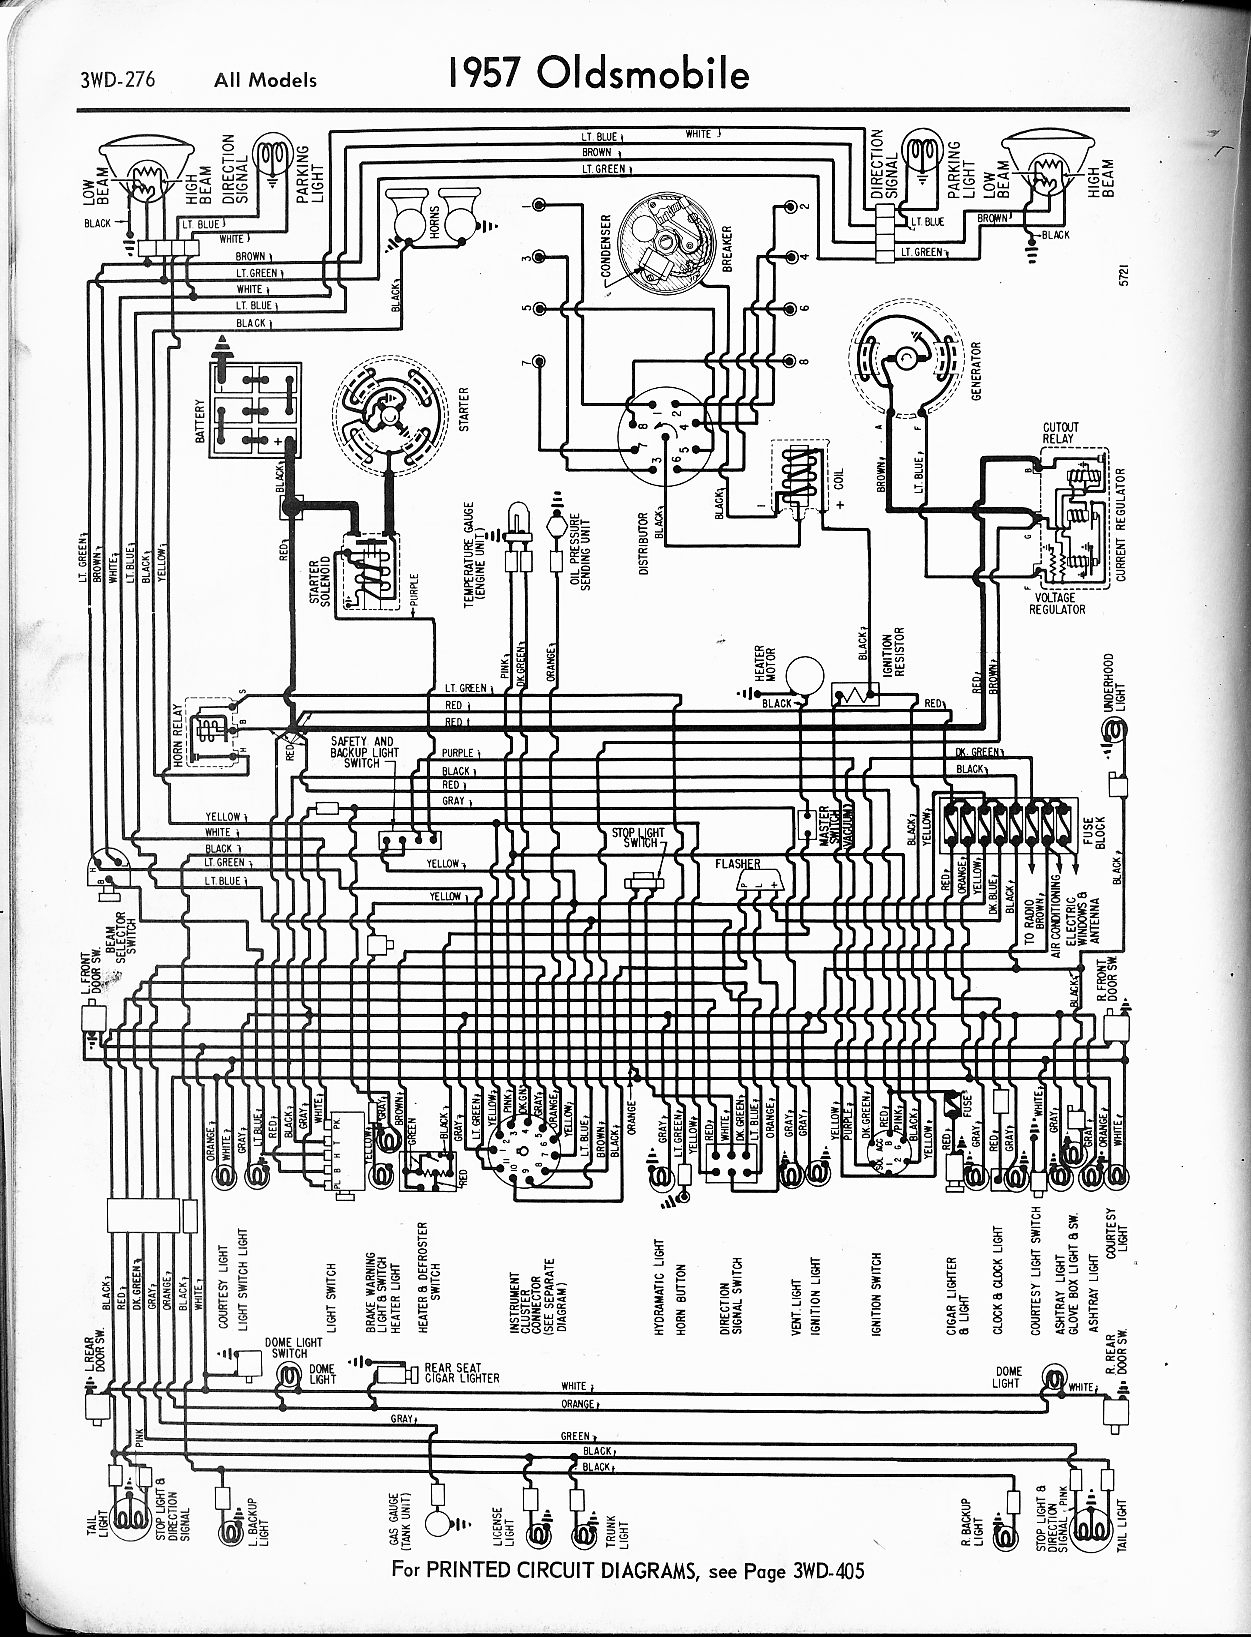 98 ez go wiring diagram download 1983 ezgo wiring diagram 98 ezgo wiring diagram